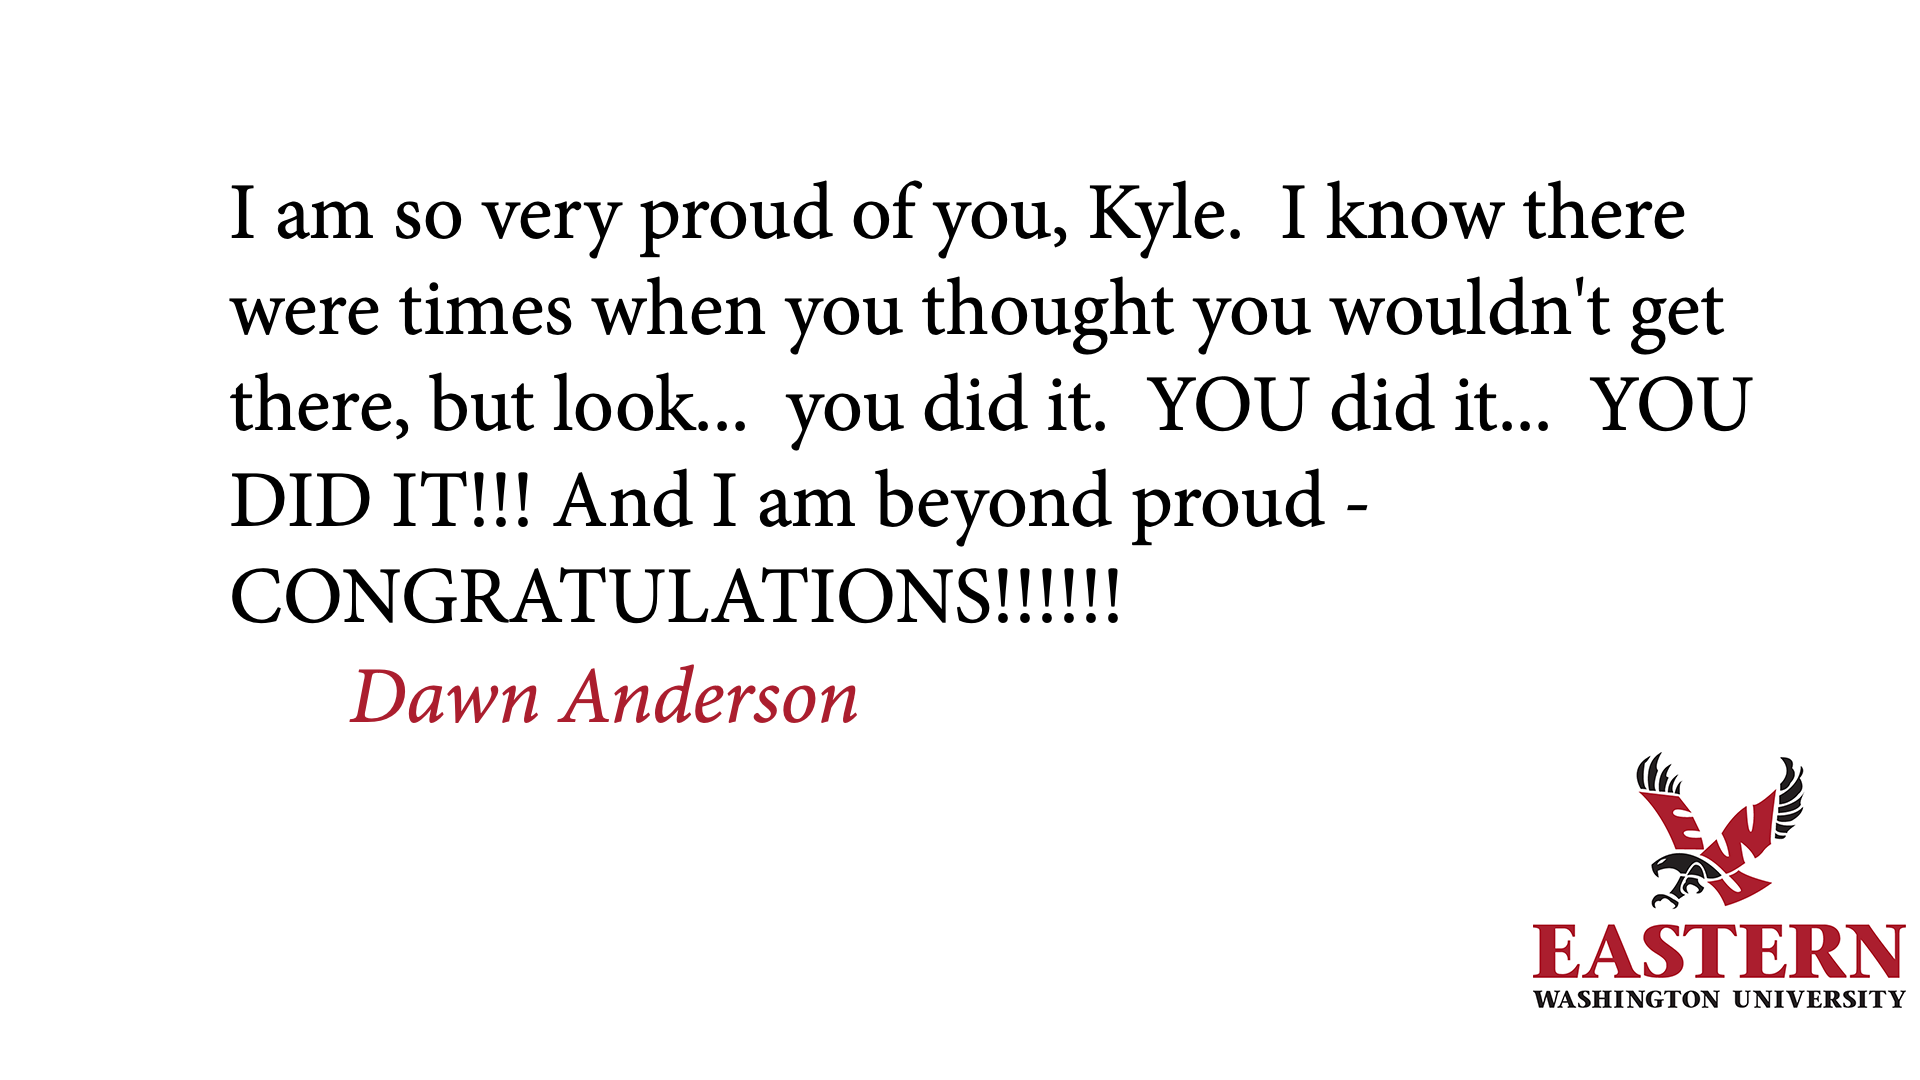 tbi_kyle-michael-anderson_121.png